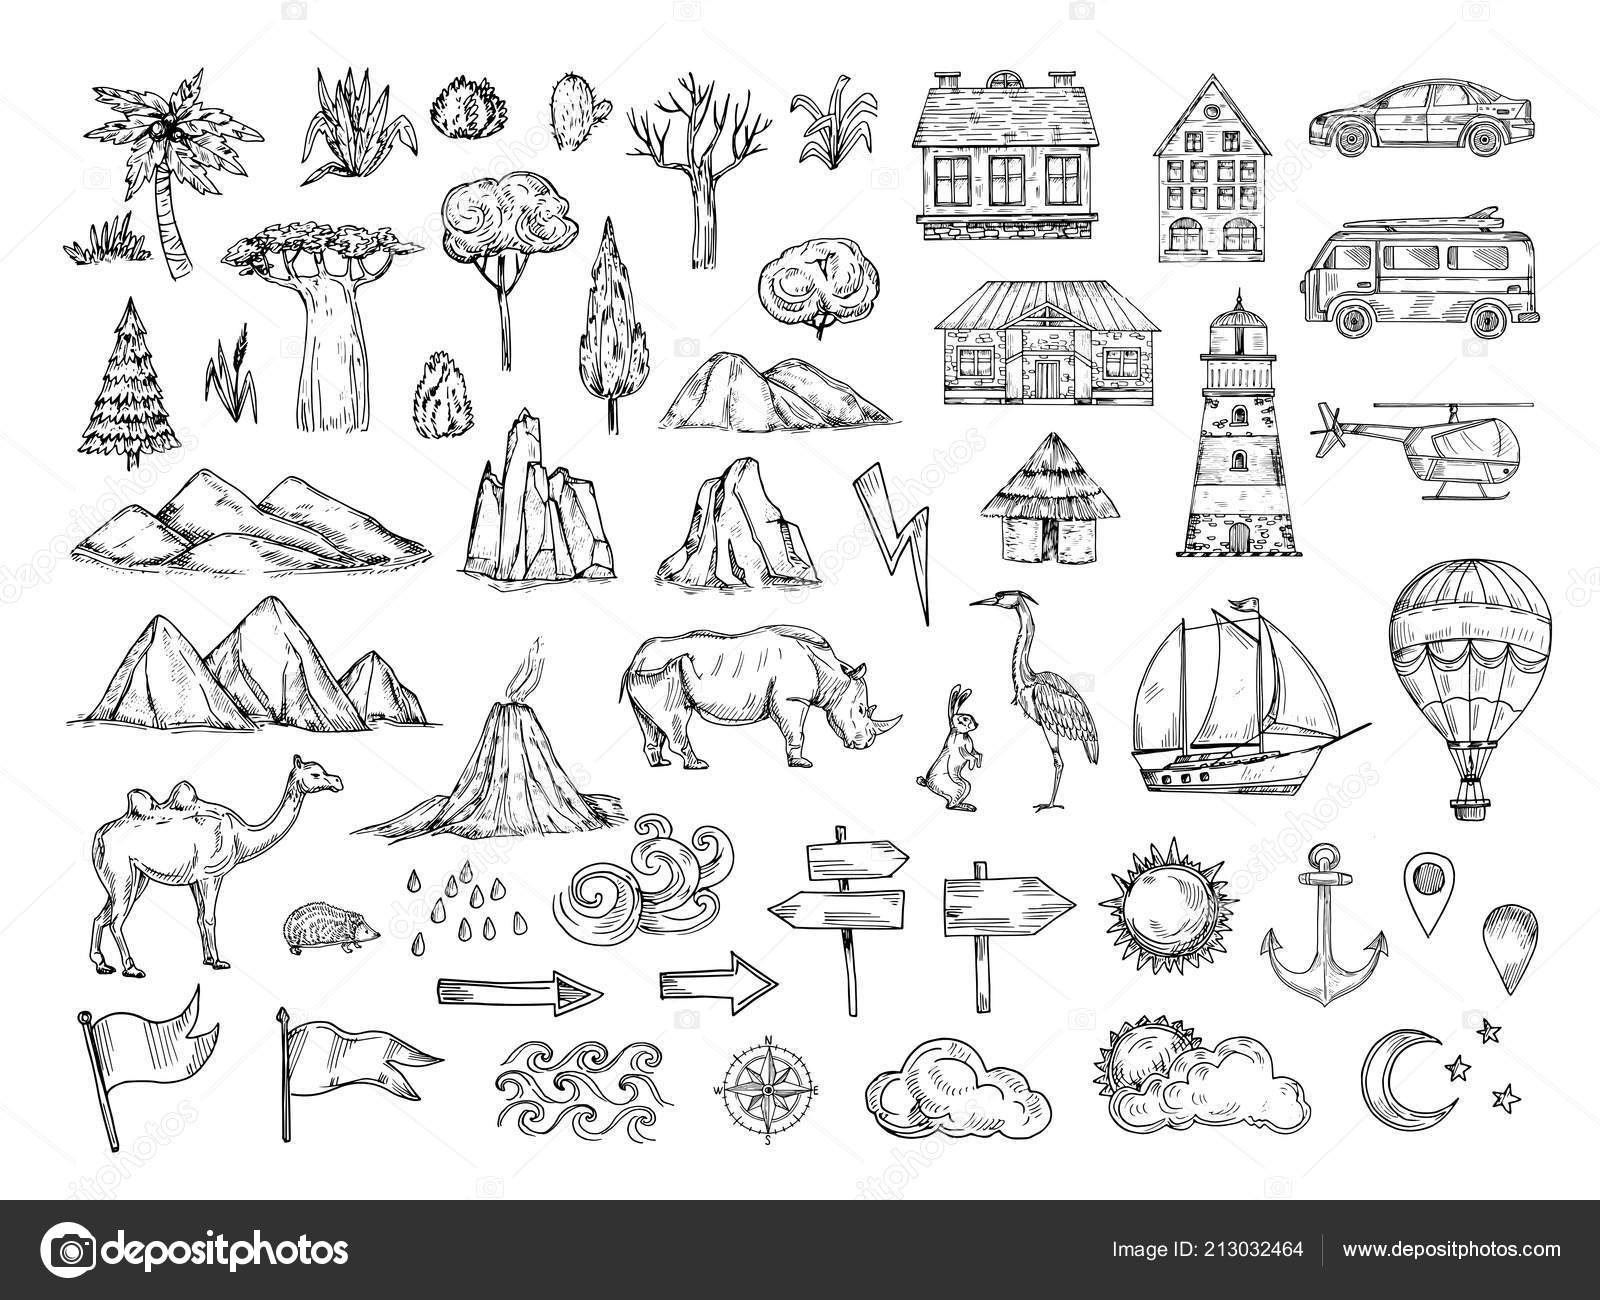 Map elements. Sketch hill and mountain, tree and bush ... on map making, map breakdown, typographic elements, map of baltimore and surrounding cities, map icons, map numbers, map symbols, map essentials, map people, map skills, map of maryland, body elements, map data, map scale, map tools, programming elements, user interface elements, miscellaneous elements, cartographic design, task elements, map key, map vintage, software elements, reference elements, map of speech, map pieces, map of arizona high schools, map of montana indian reservations, topic elements,